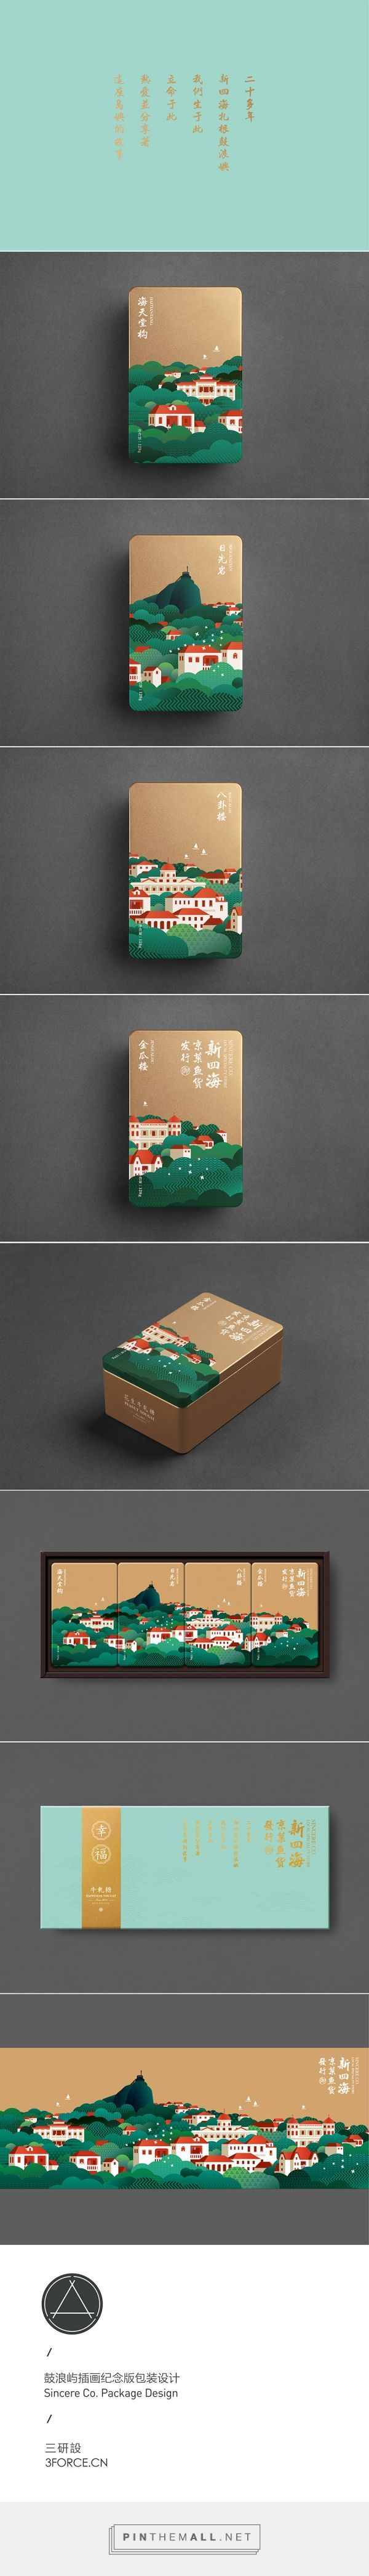 "Sincere Co. Nougat Packaging / 新四海牛軋糖包裝設計 on Behance - created via <a href="""" rel=""nofollow"" target=""_blank""></a>"